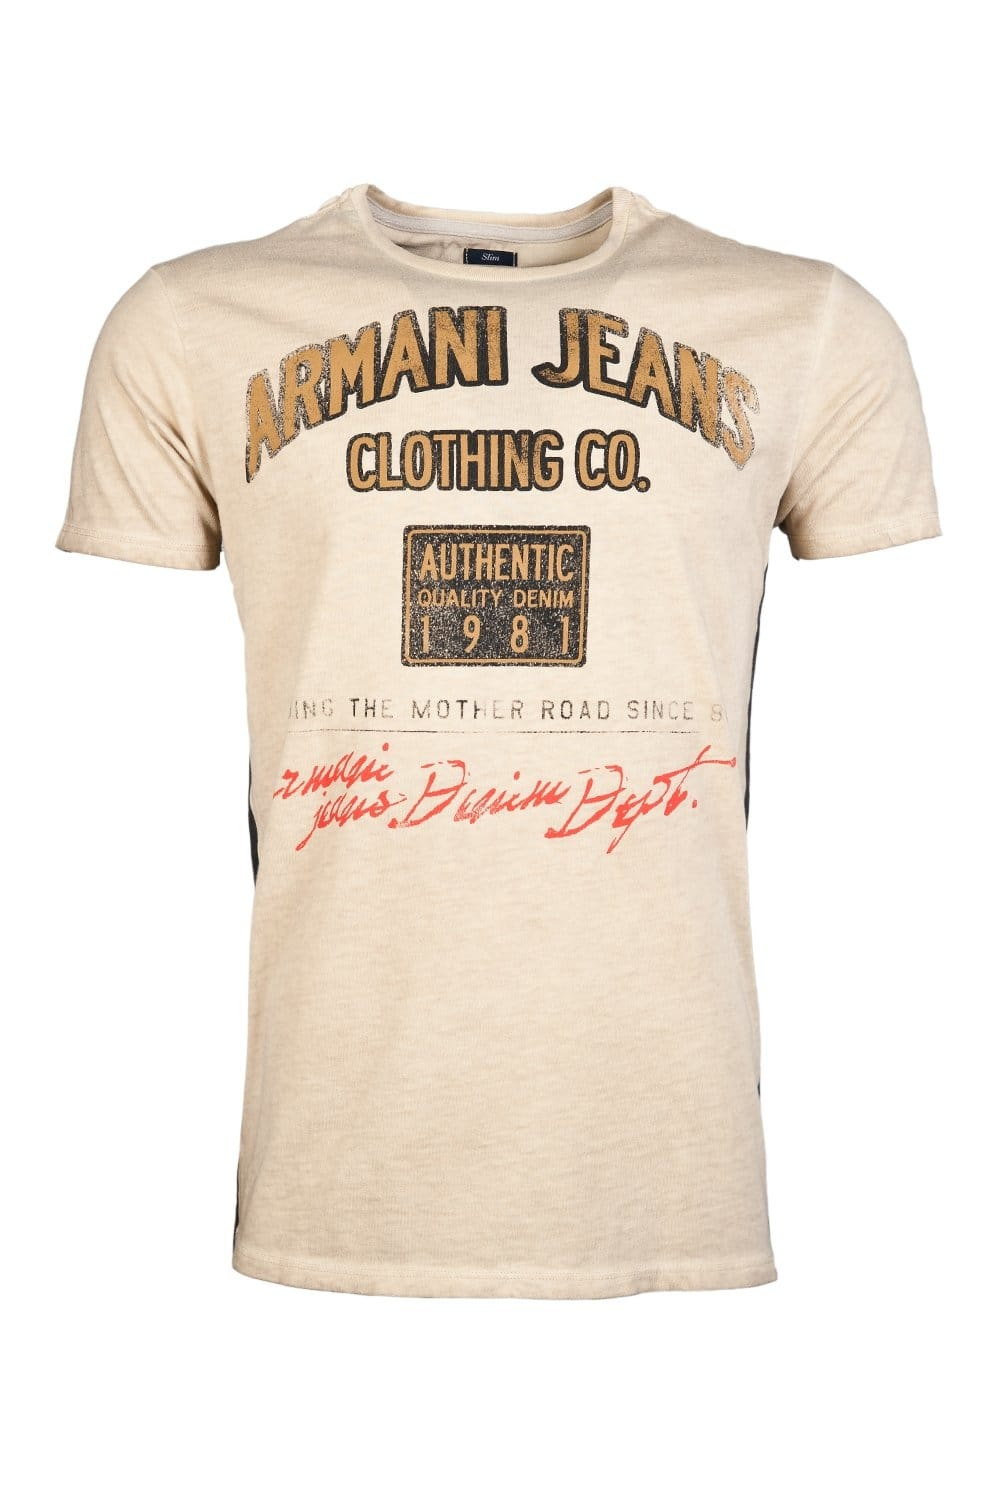 armani jeans designer crew neck t shirt in beige and grey